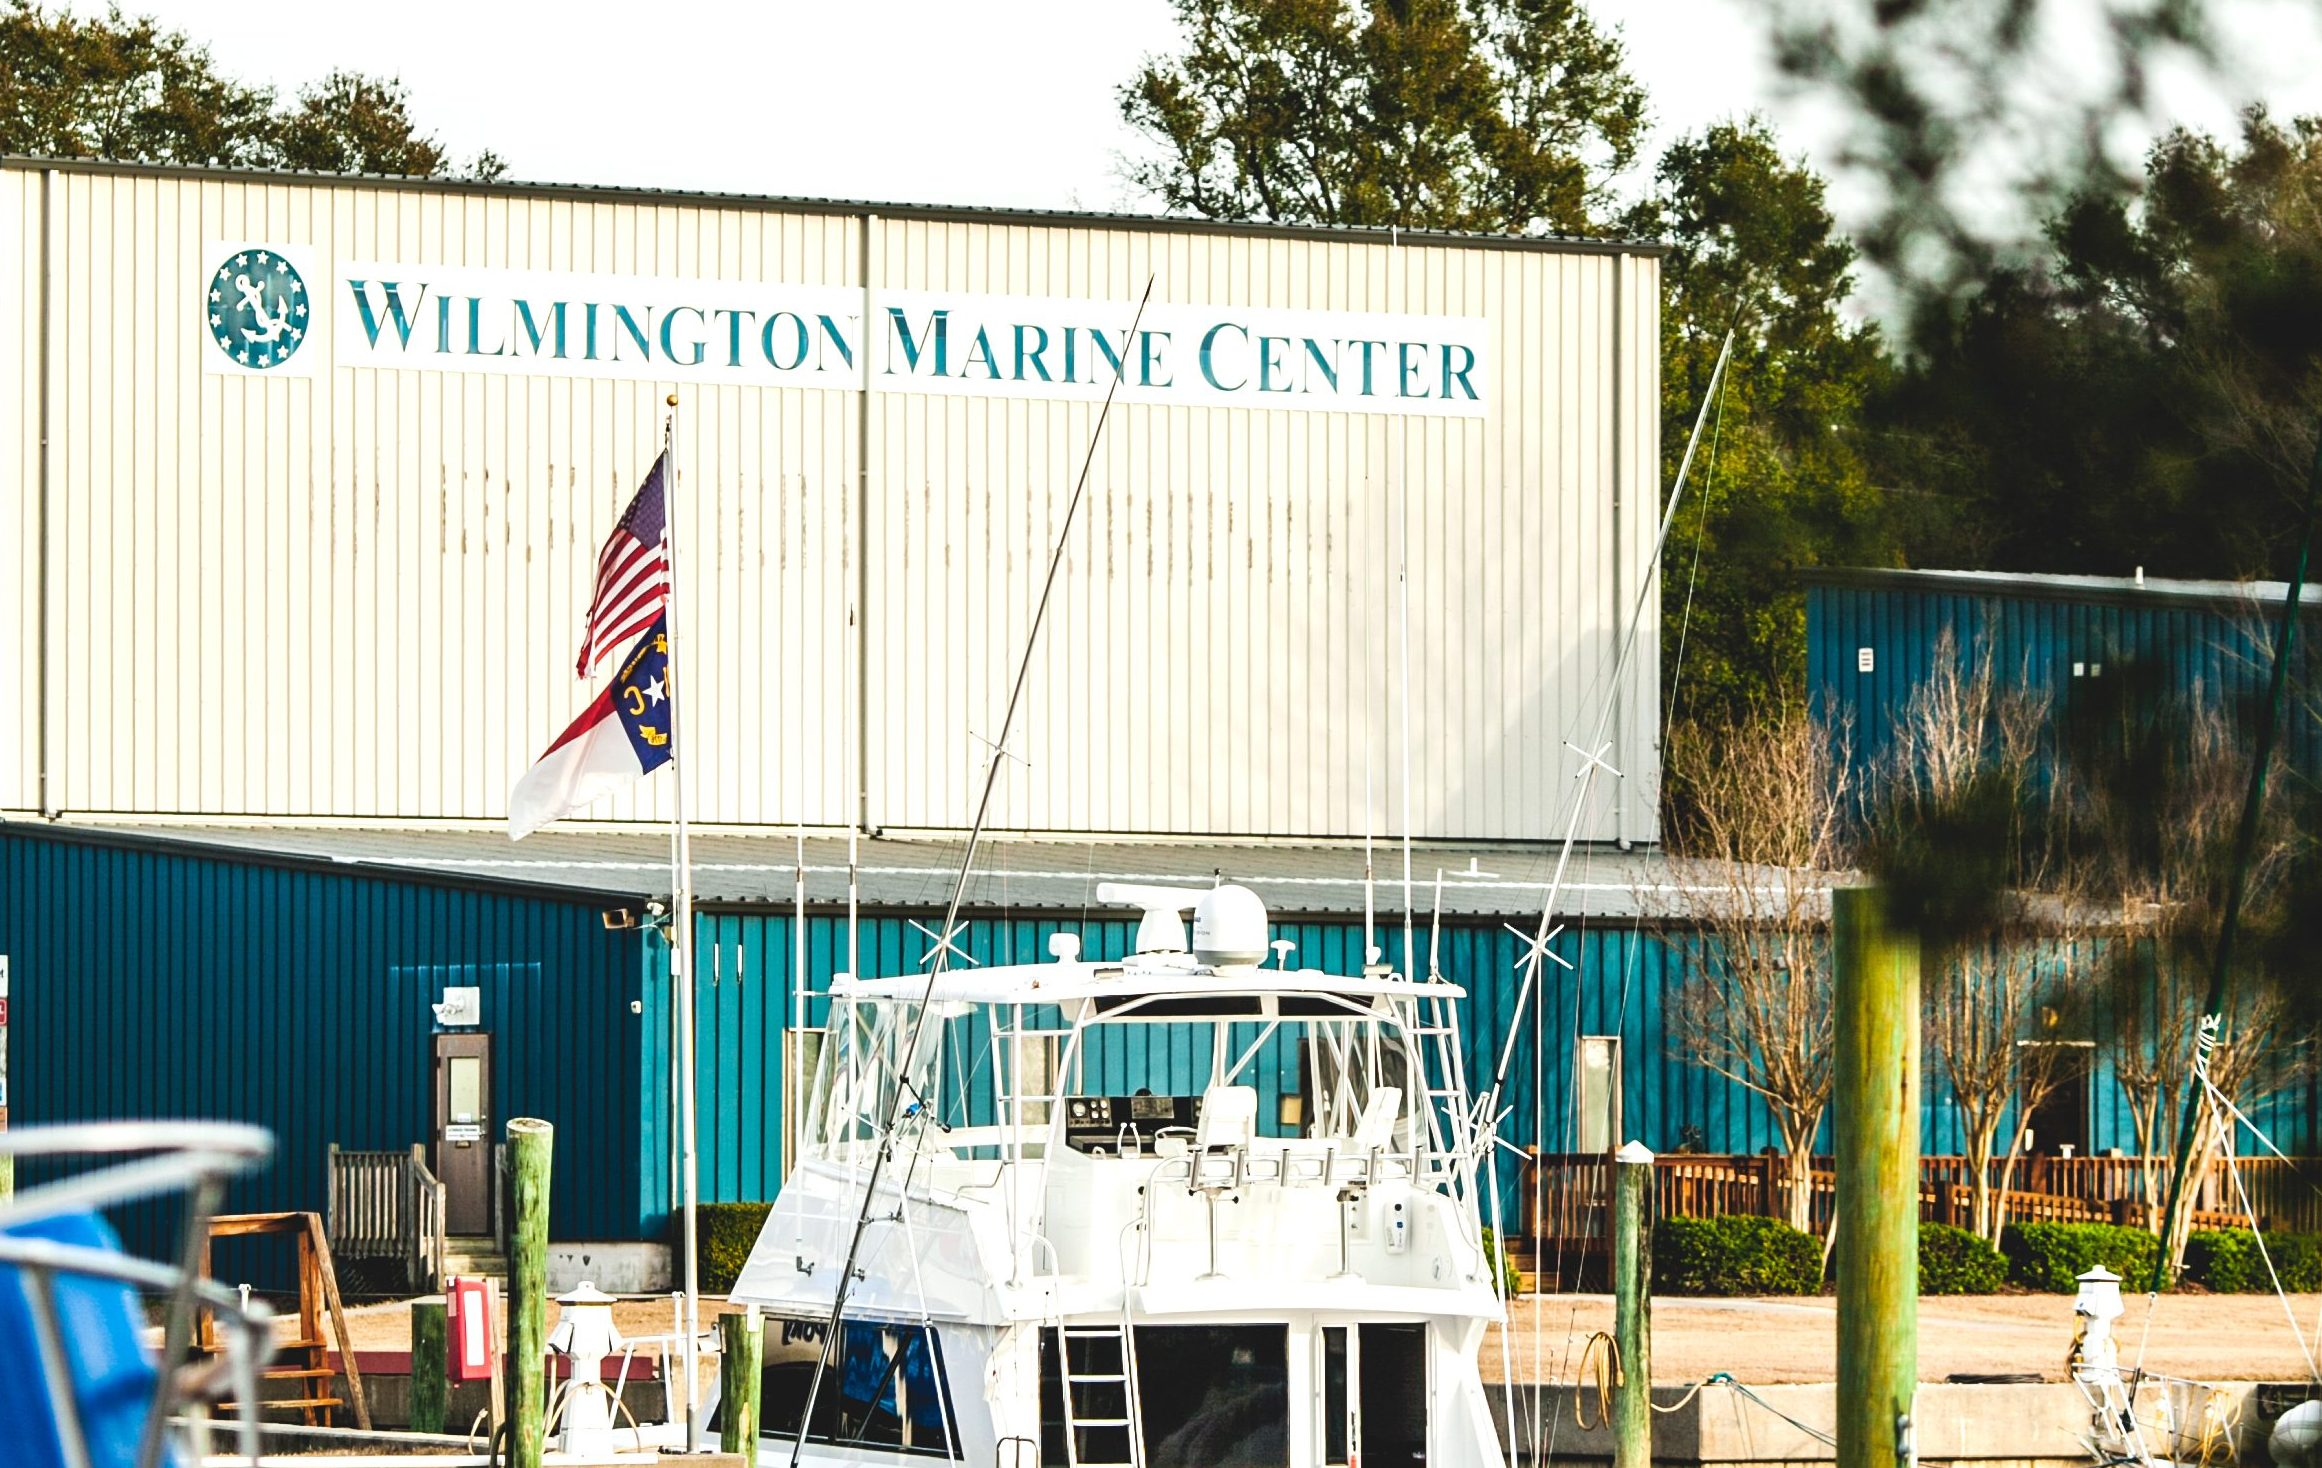 wilmington marine center office